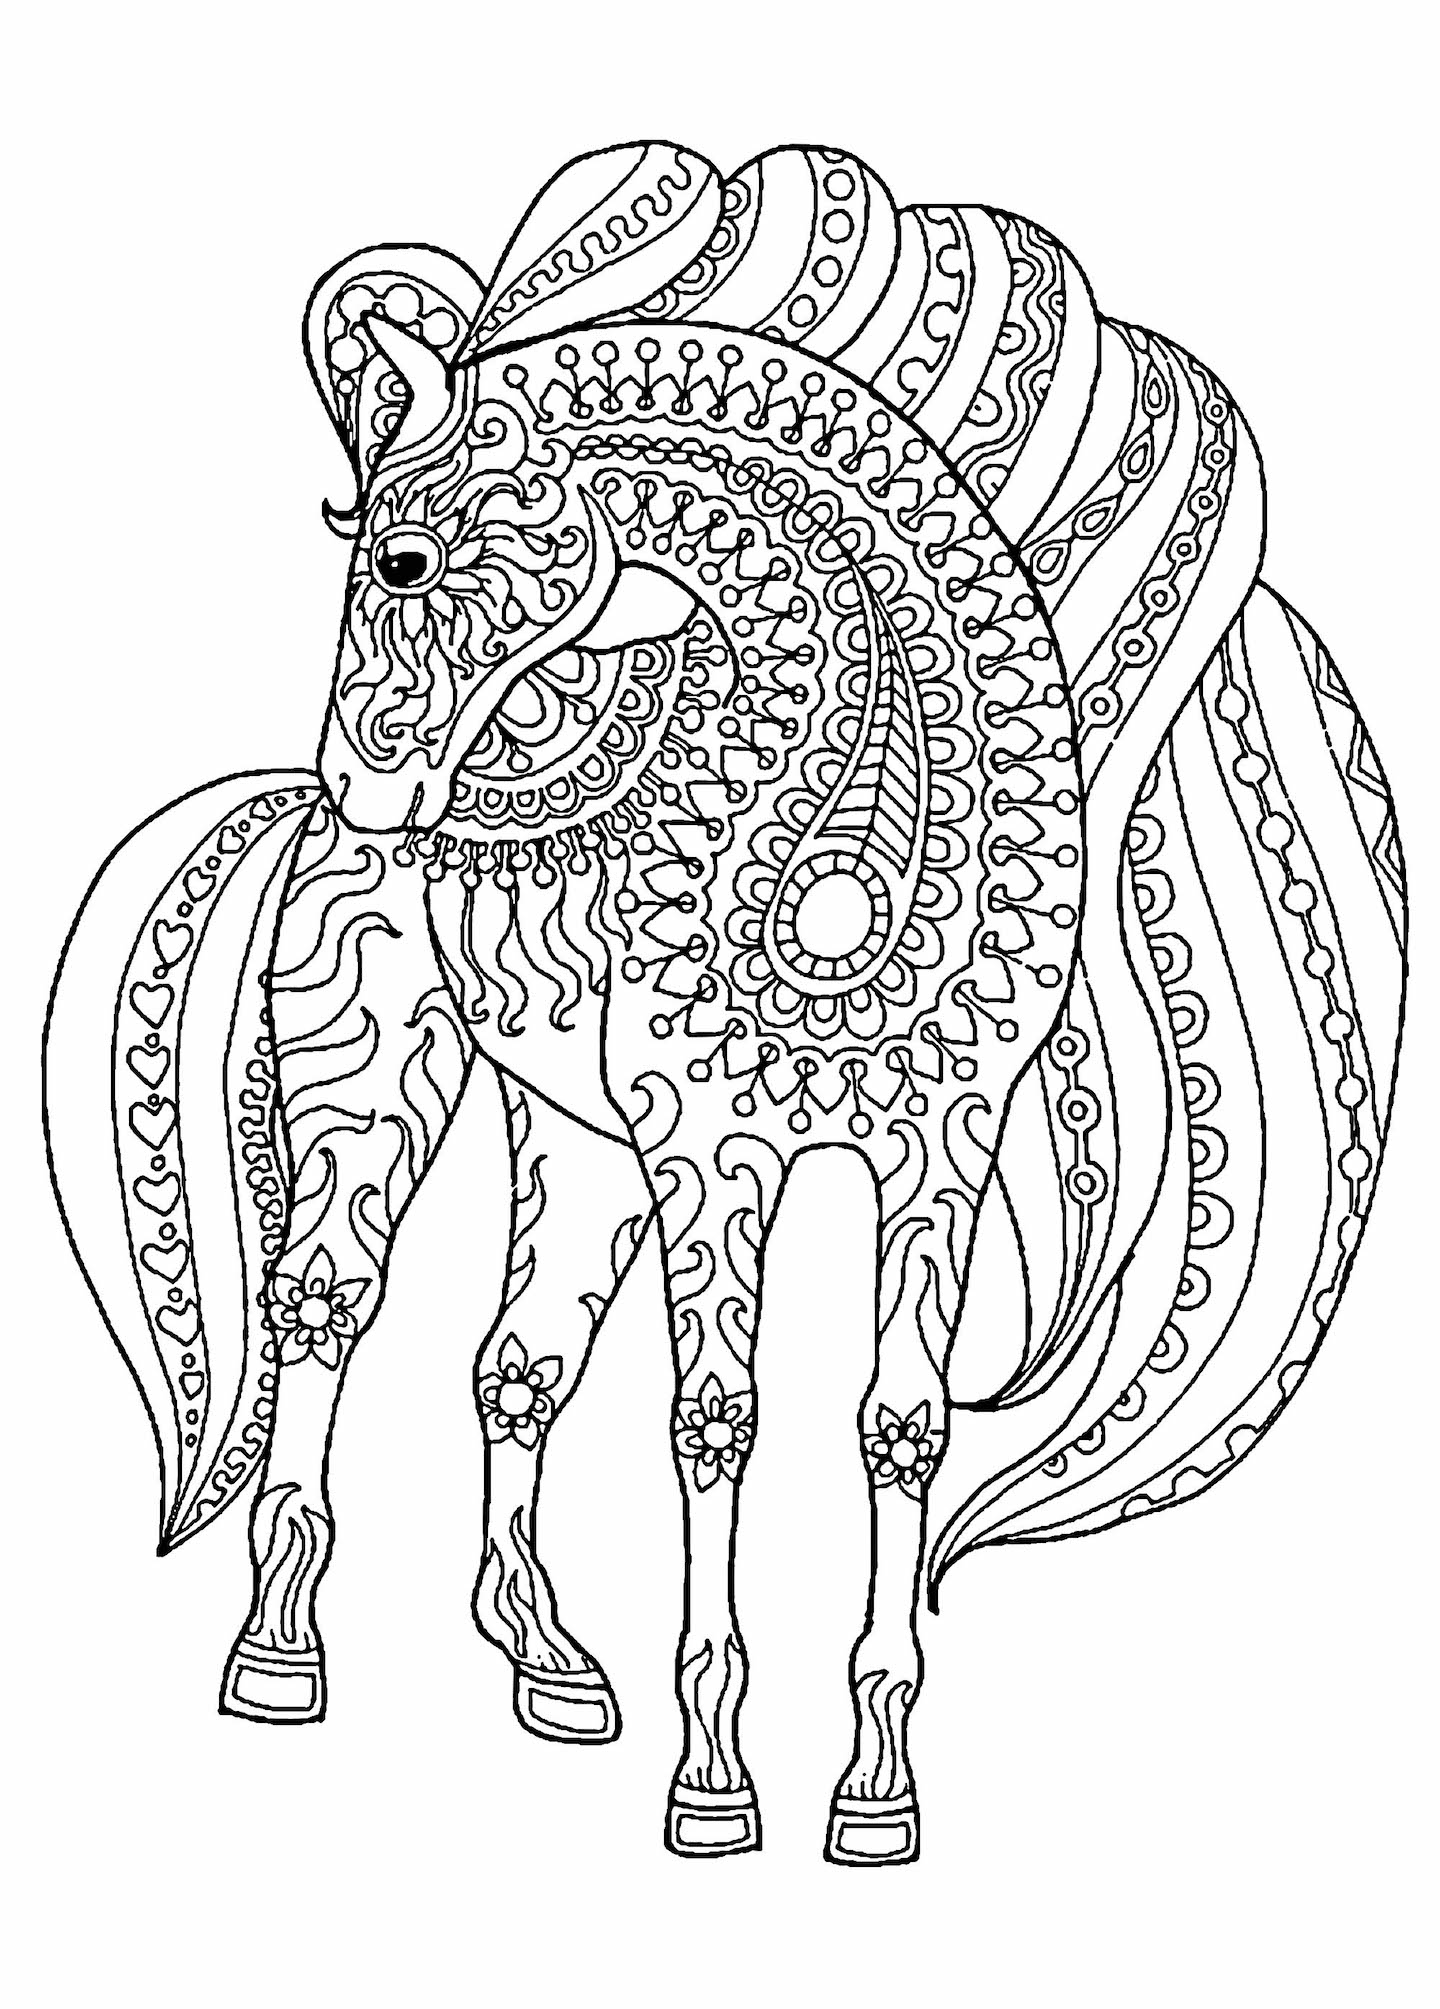 horses color pages horse coloring pages for kids coloring pages for kids pages horses color 1 1